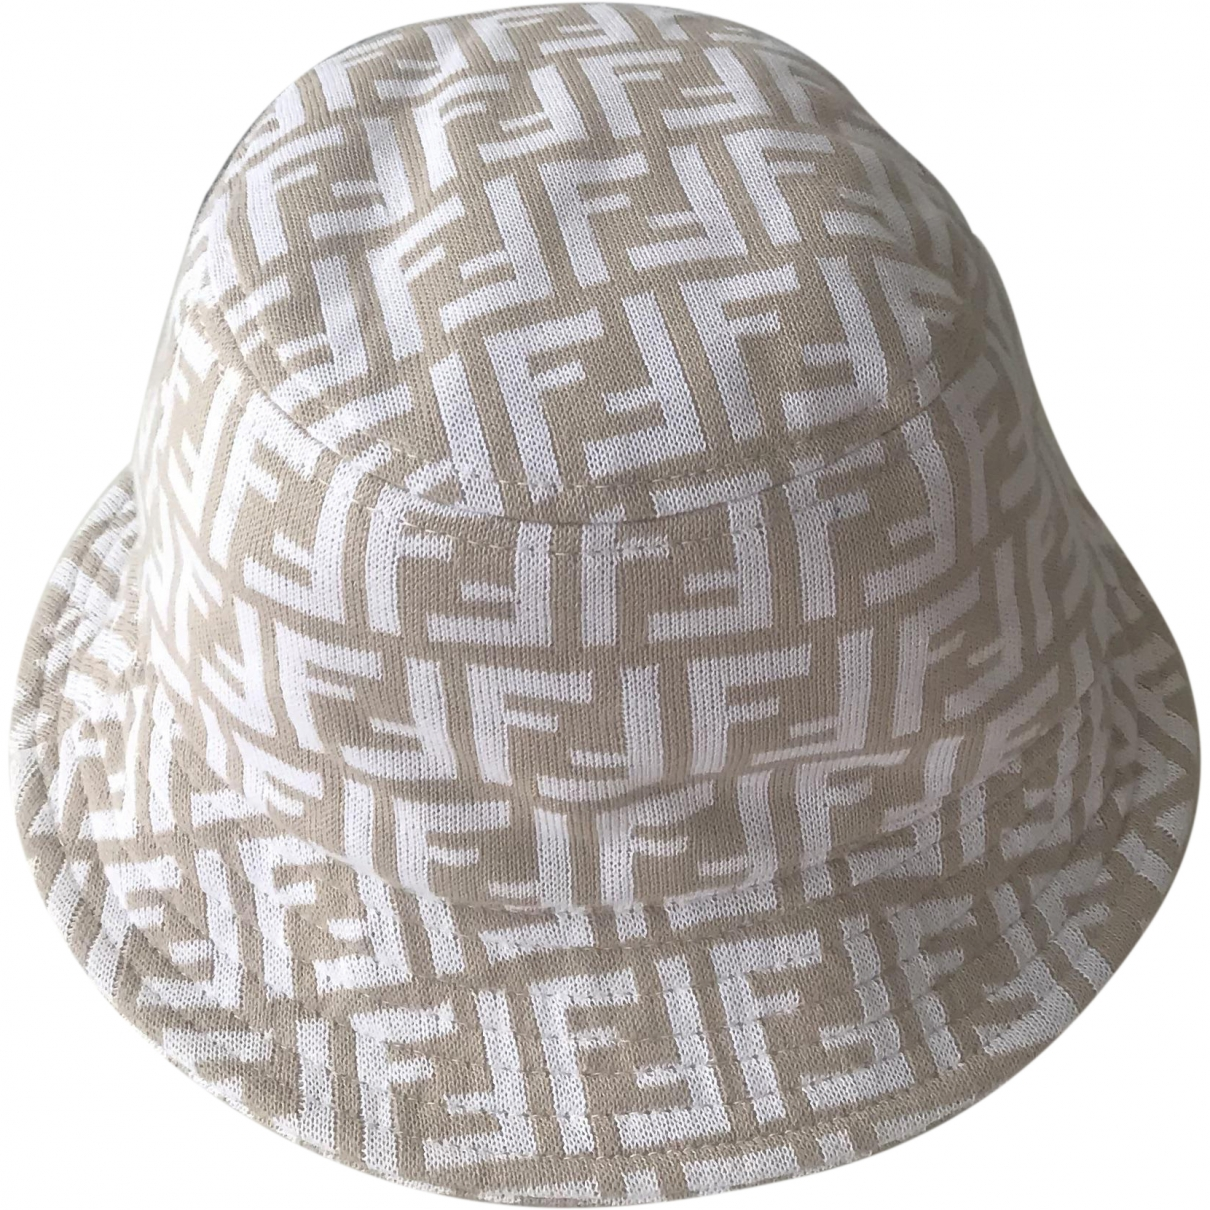 Fendi \N Beige Cloth hat for Women M International